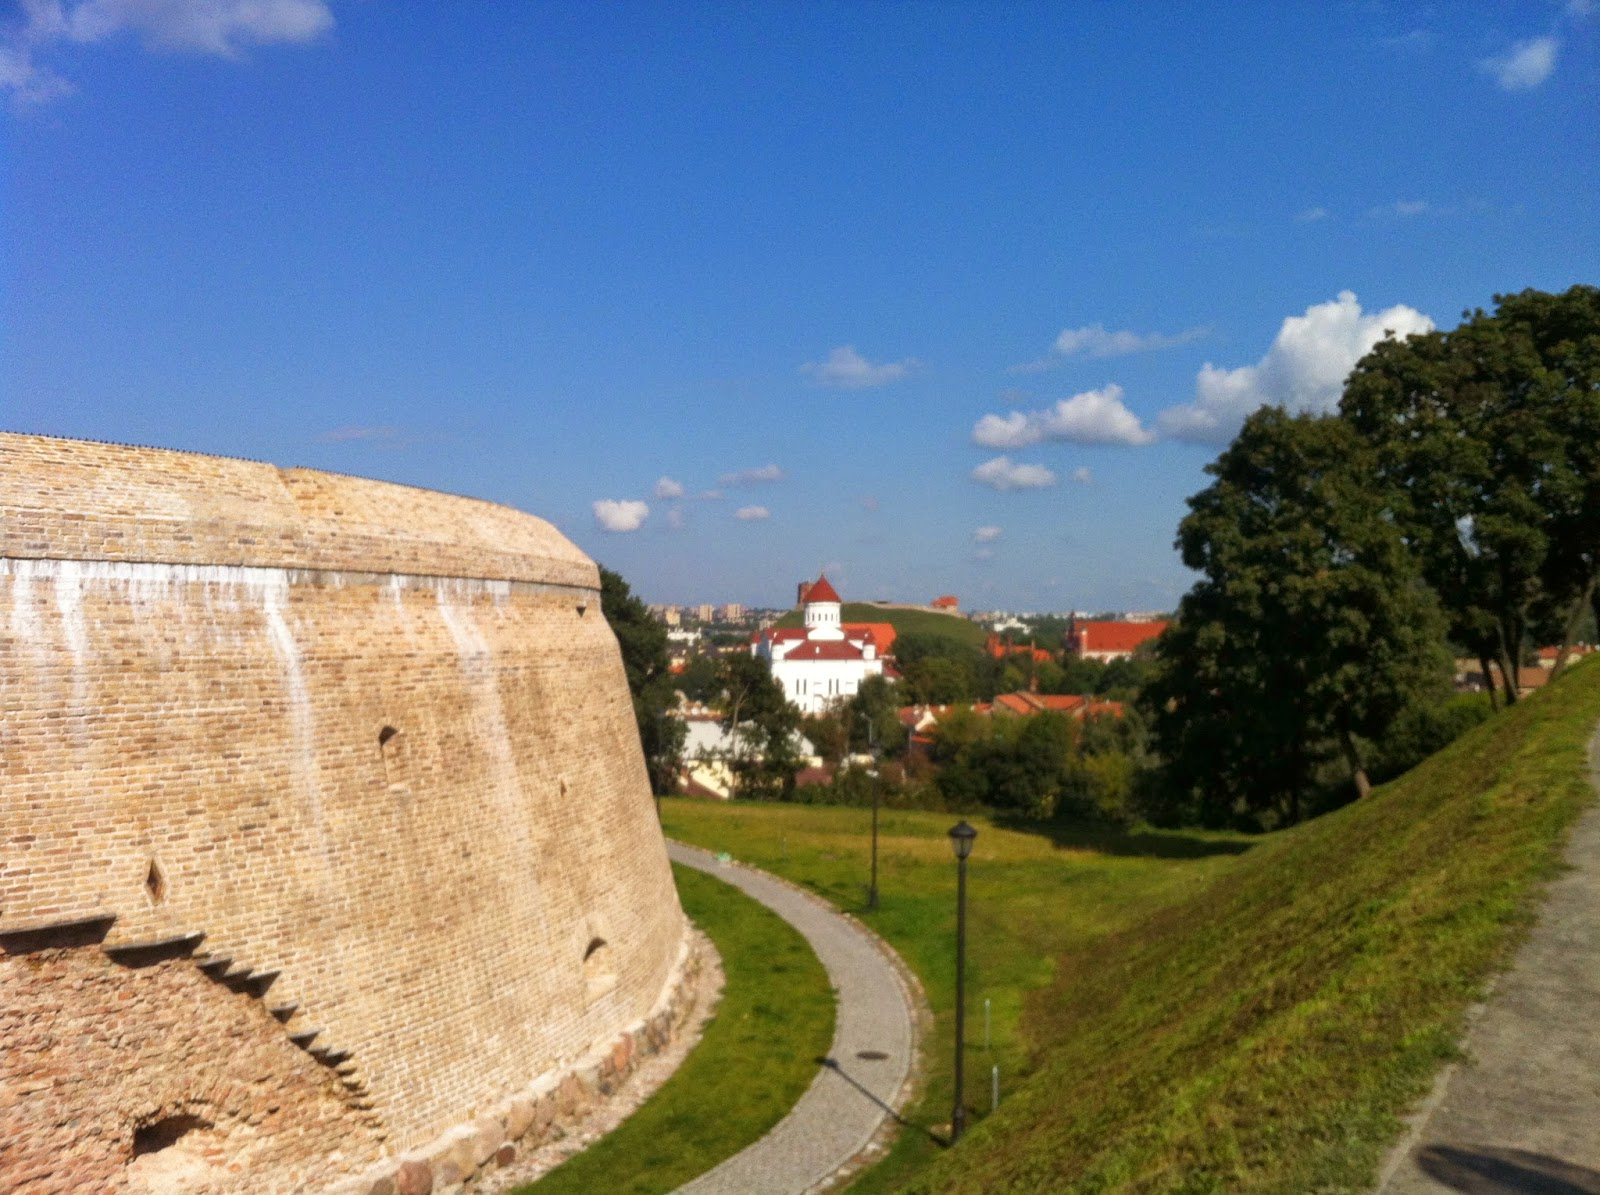 Bastion of the Vilnius City Wall